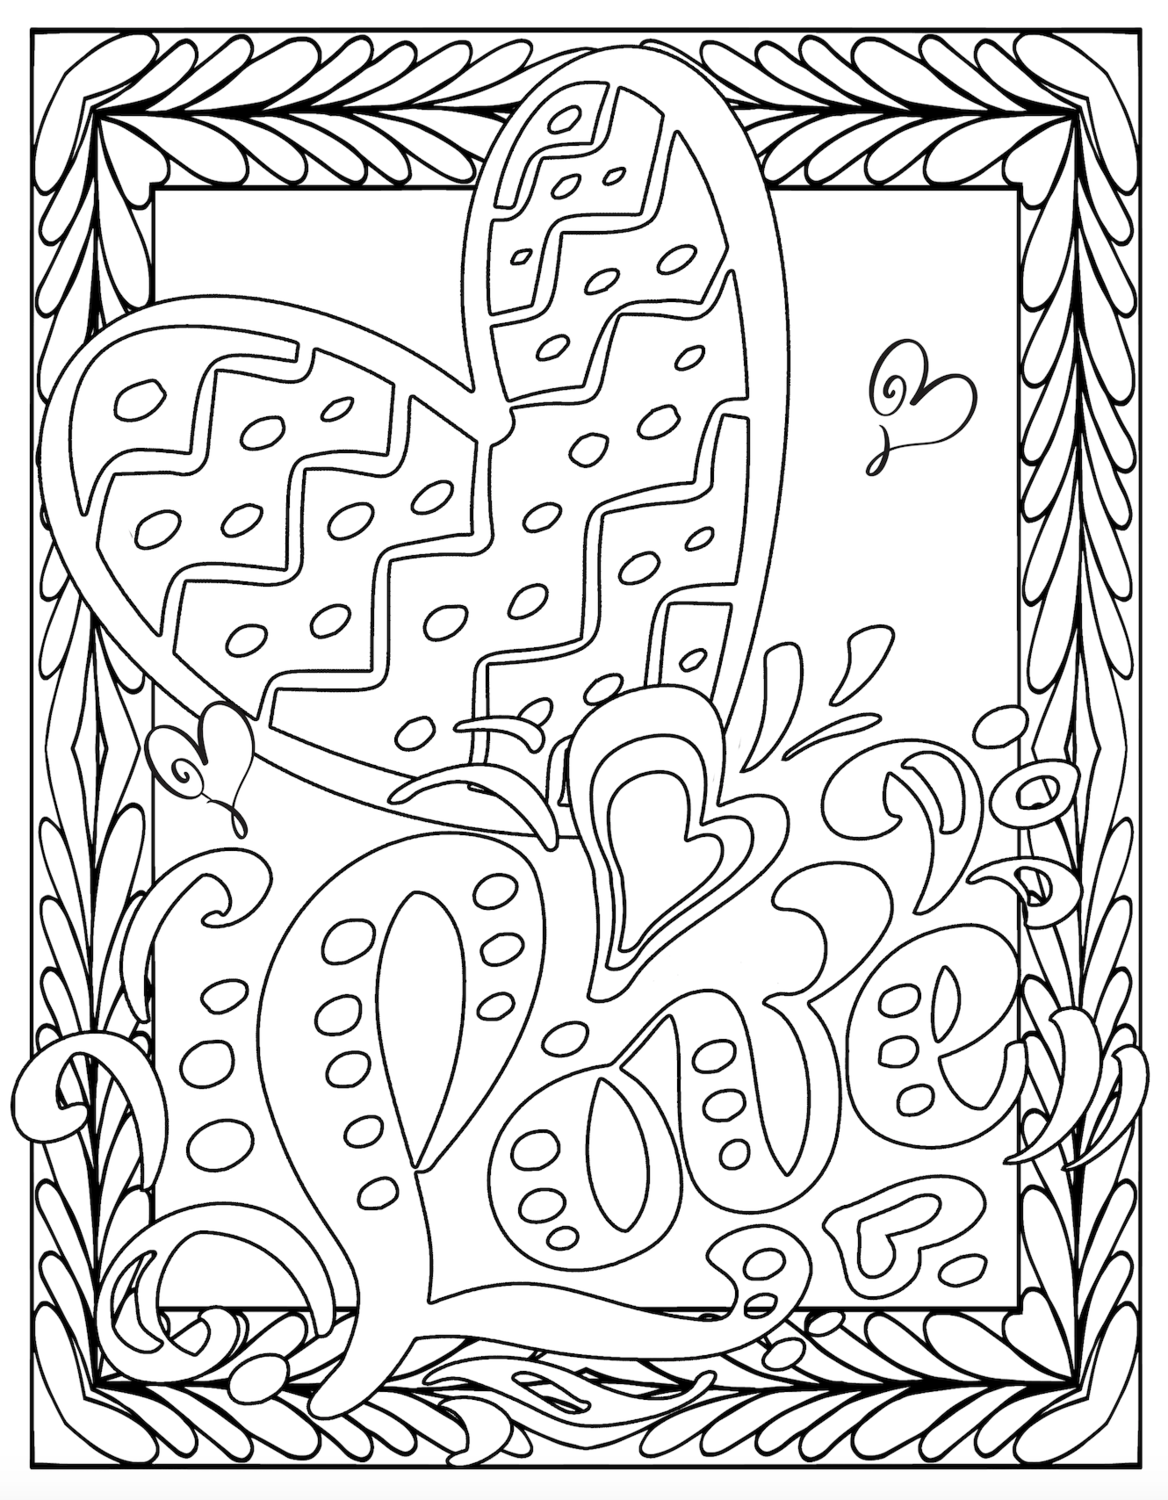 Valentine's Free Printable Love Coloring Pages - Pretty ...